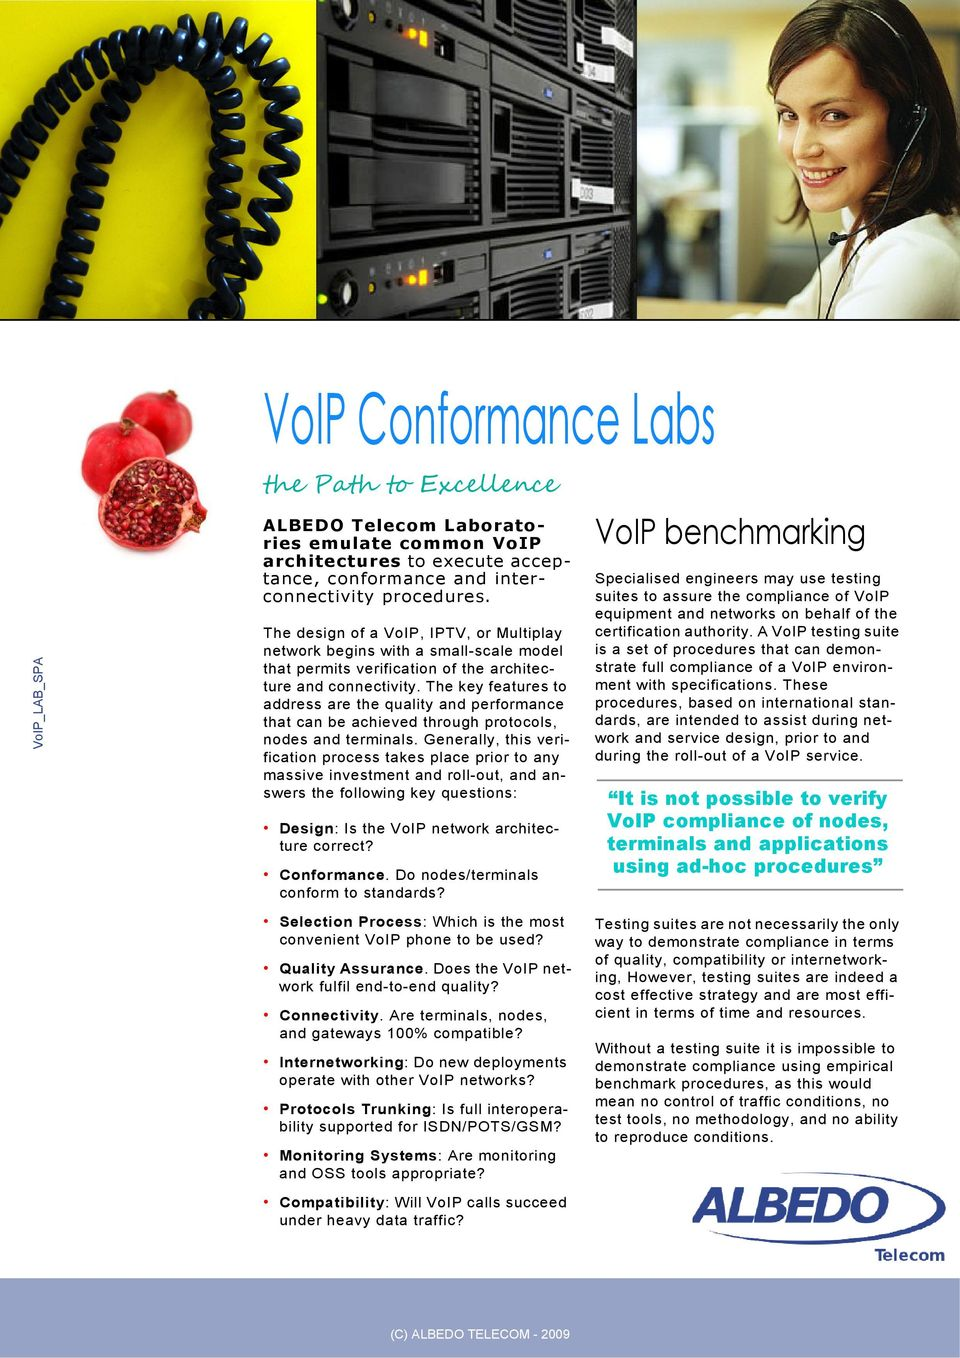 323 conformance, H323 Approval VoIP Conformance Labs VoIP_LAB_SPA the Path to Excellence ALBEDO Telecom Laboratories emulate common VoIP architectures to execute acceptance, conformance and